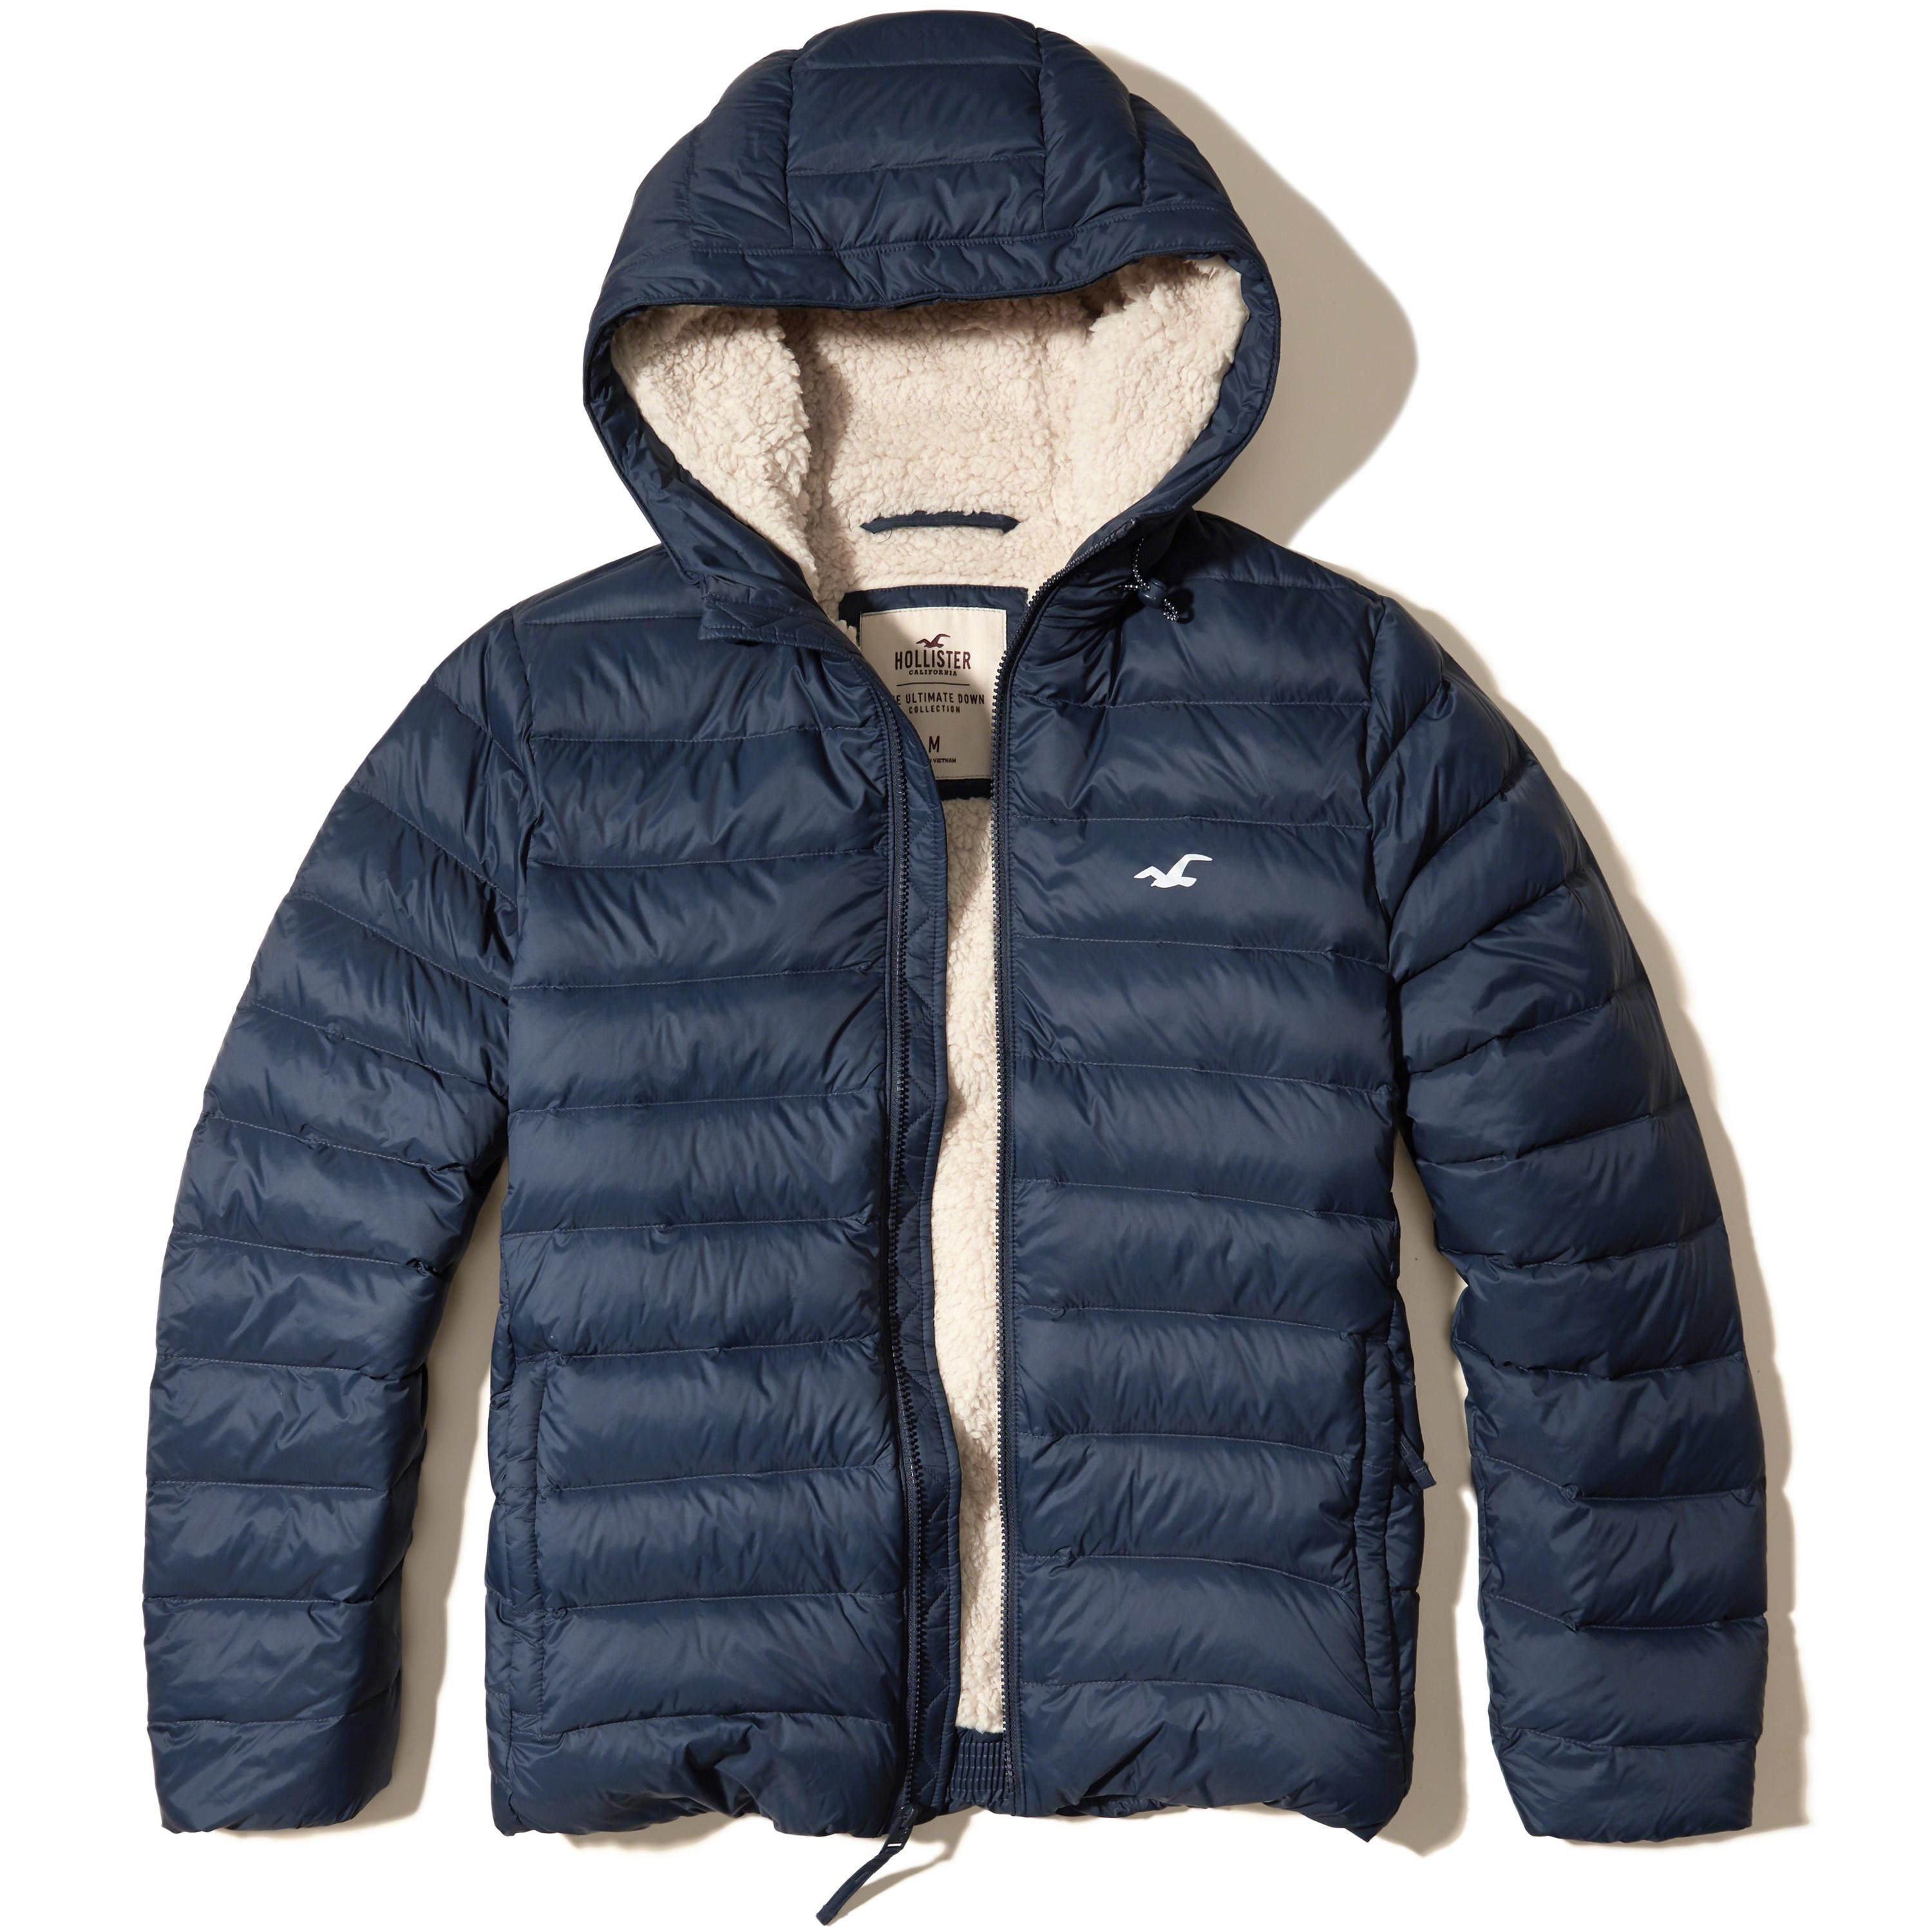 MENS SUPREME BEING /'EXPEDITION/' FUNNEL NECK PADDED PARKA JACKET Z99 SALE NAVY